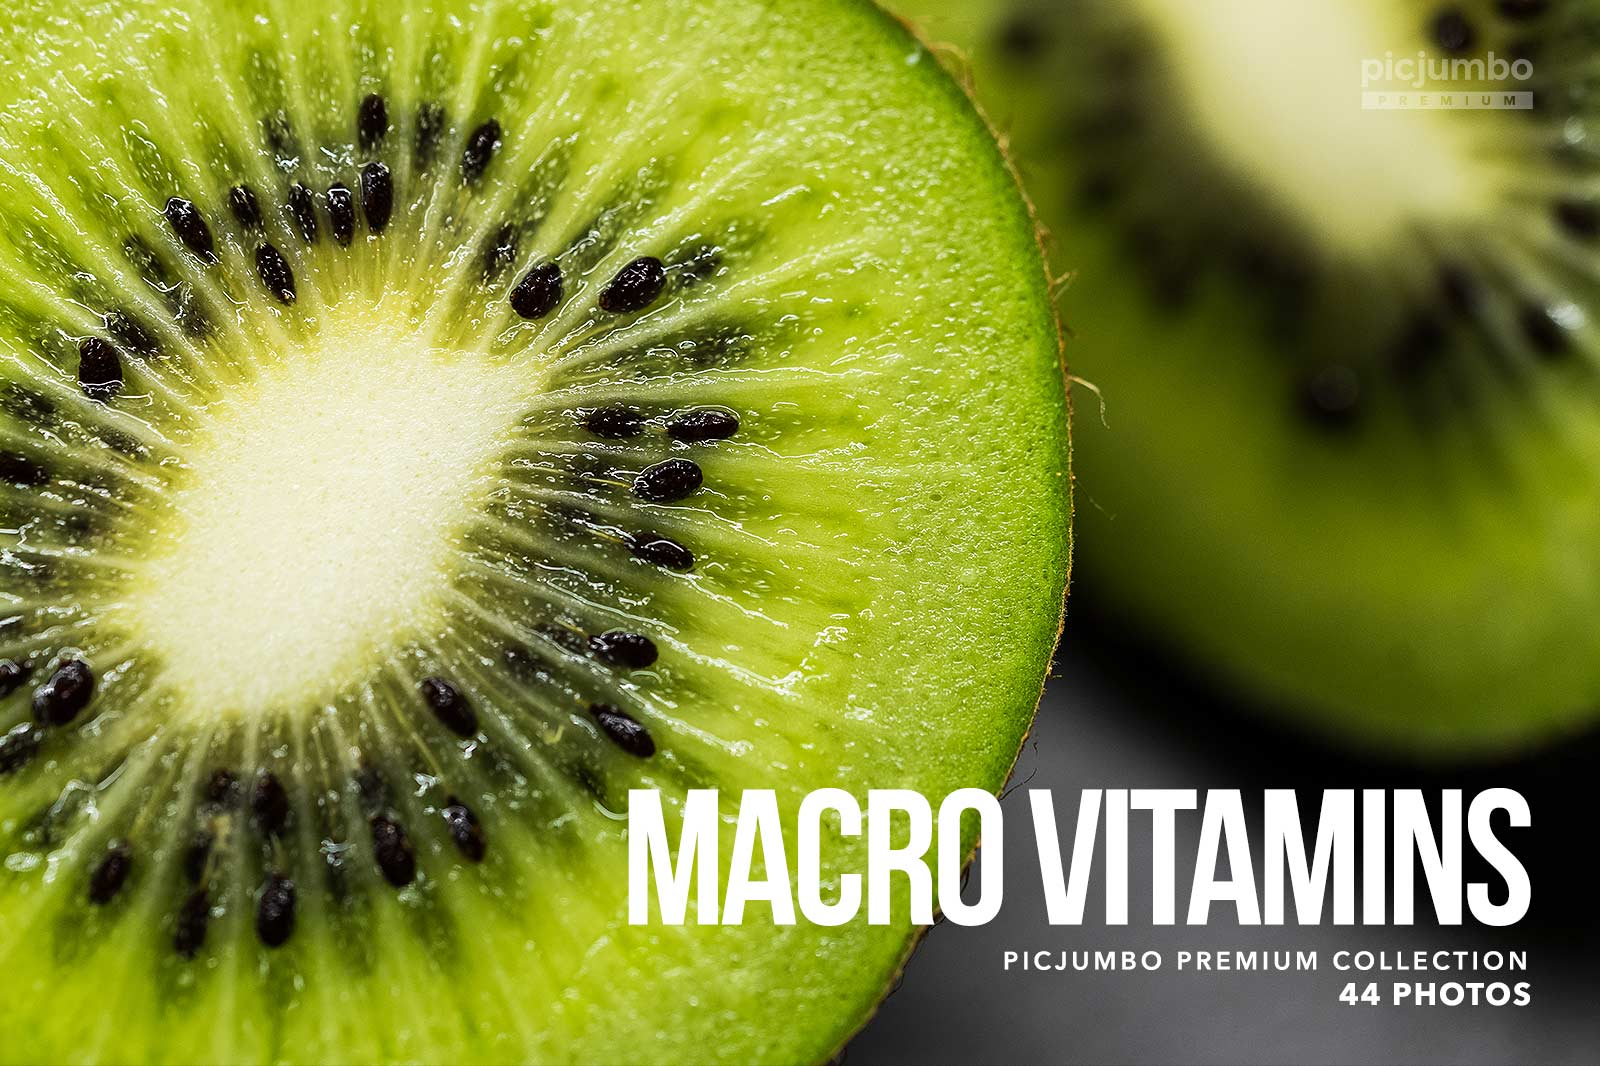 Macro Vitamins — get it now in picjumbo PREMIUM!